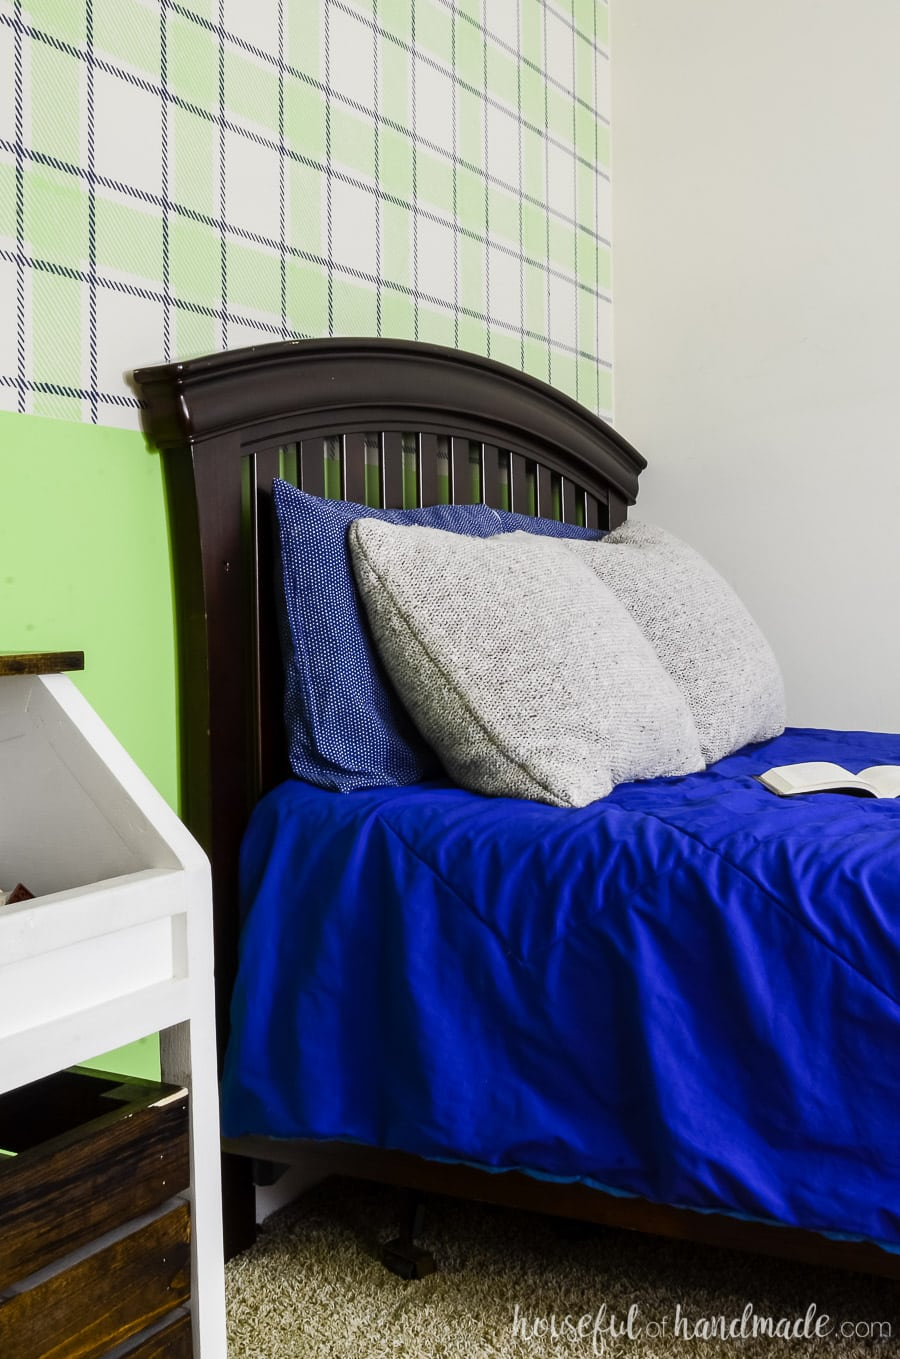 Dark wood craftsman headboard in a boys bedroom. Blue bedding with a green plaid wall design on the back wall.